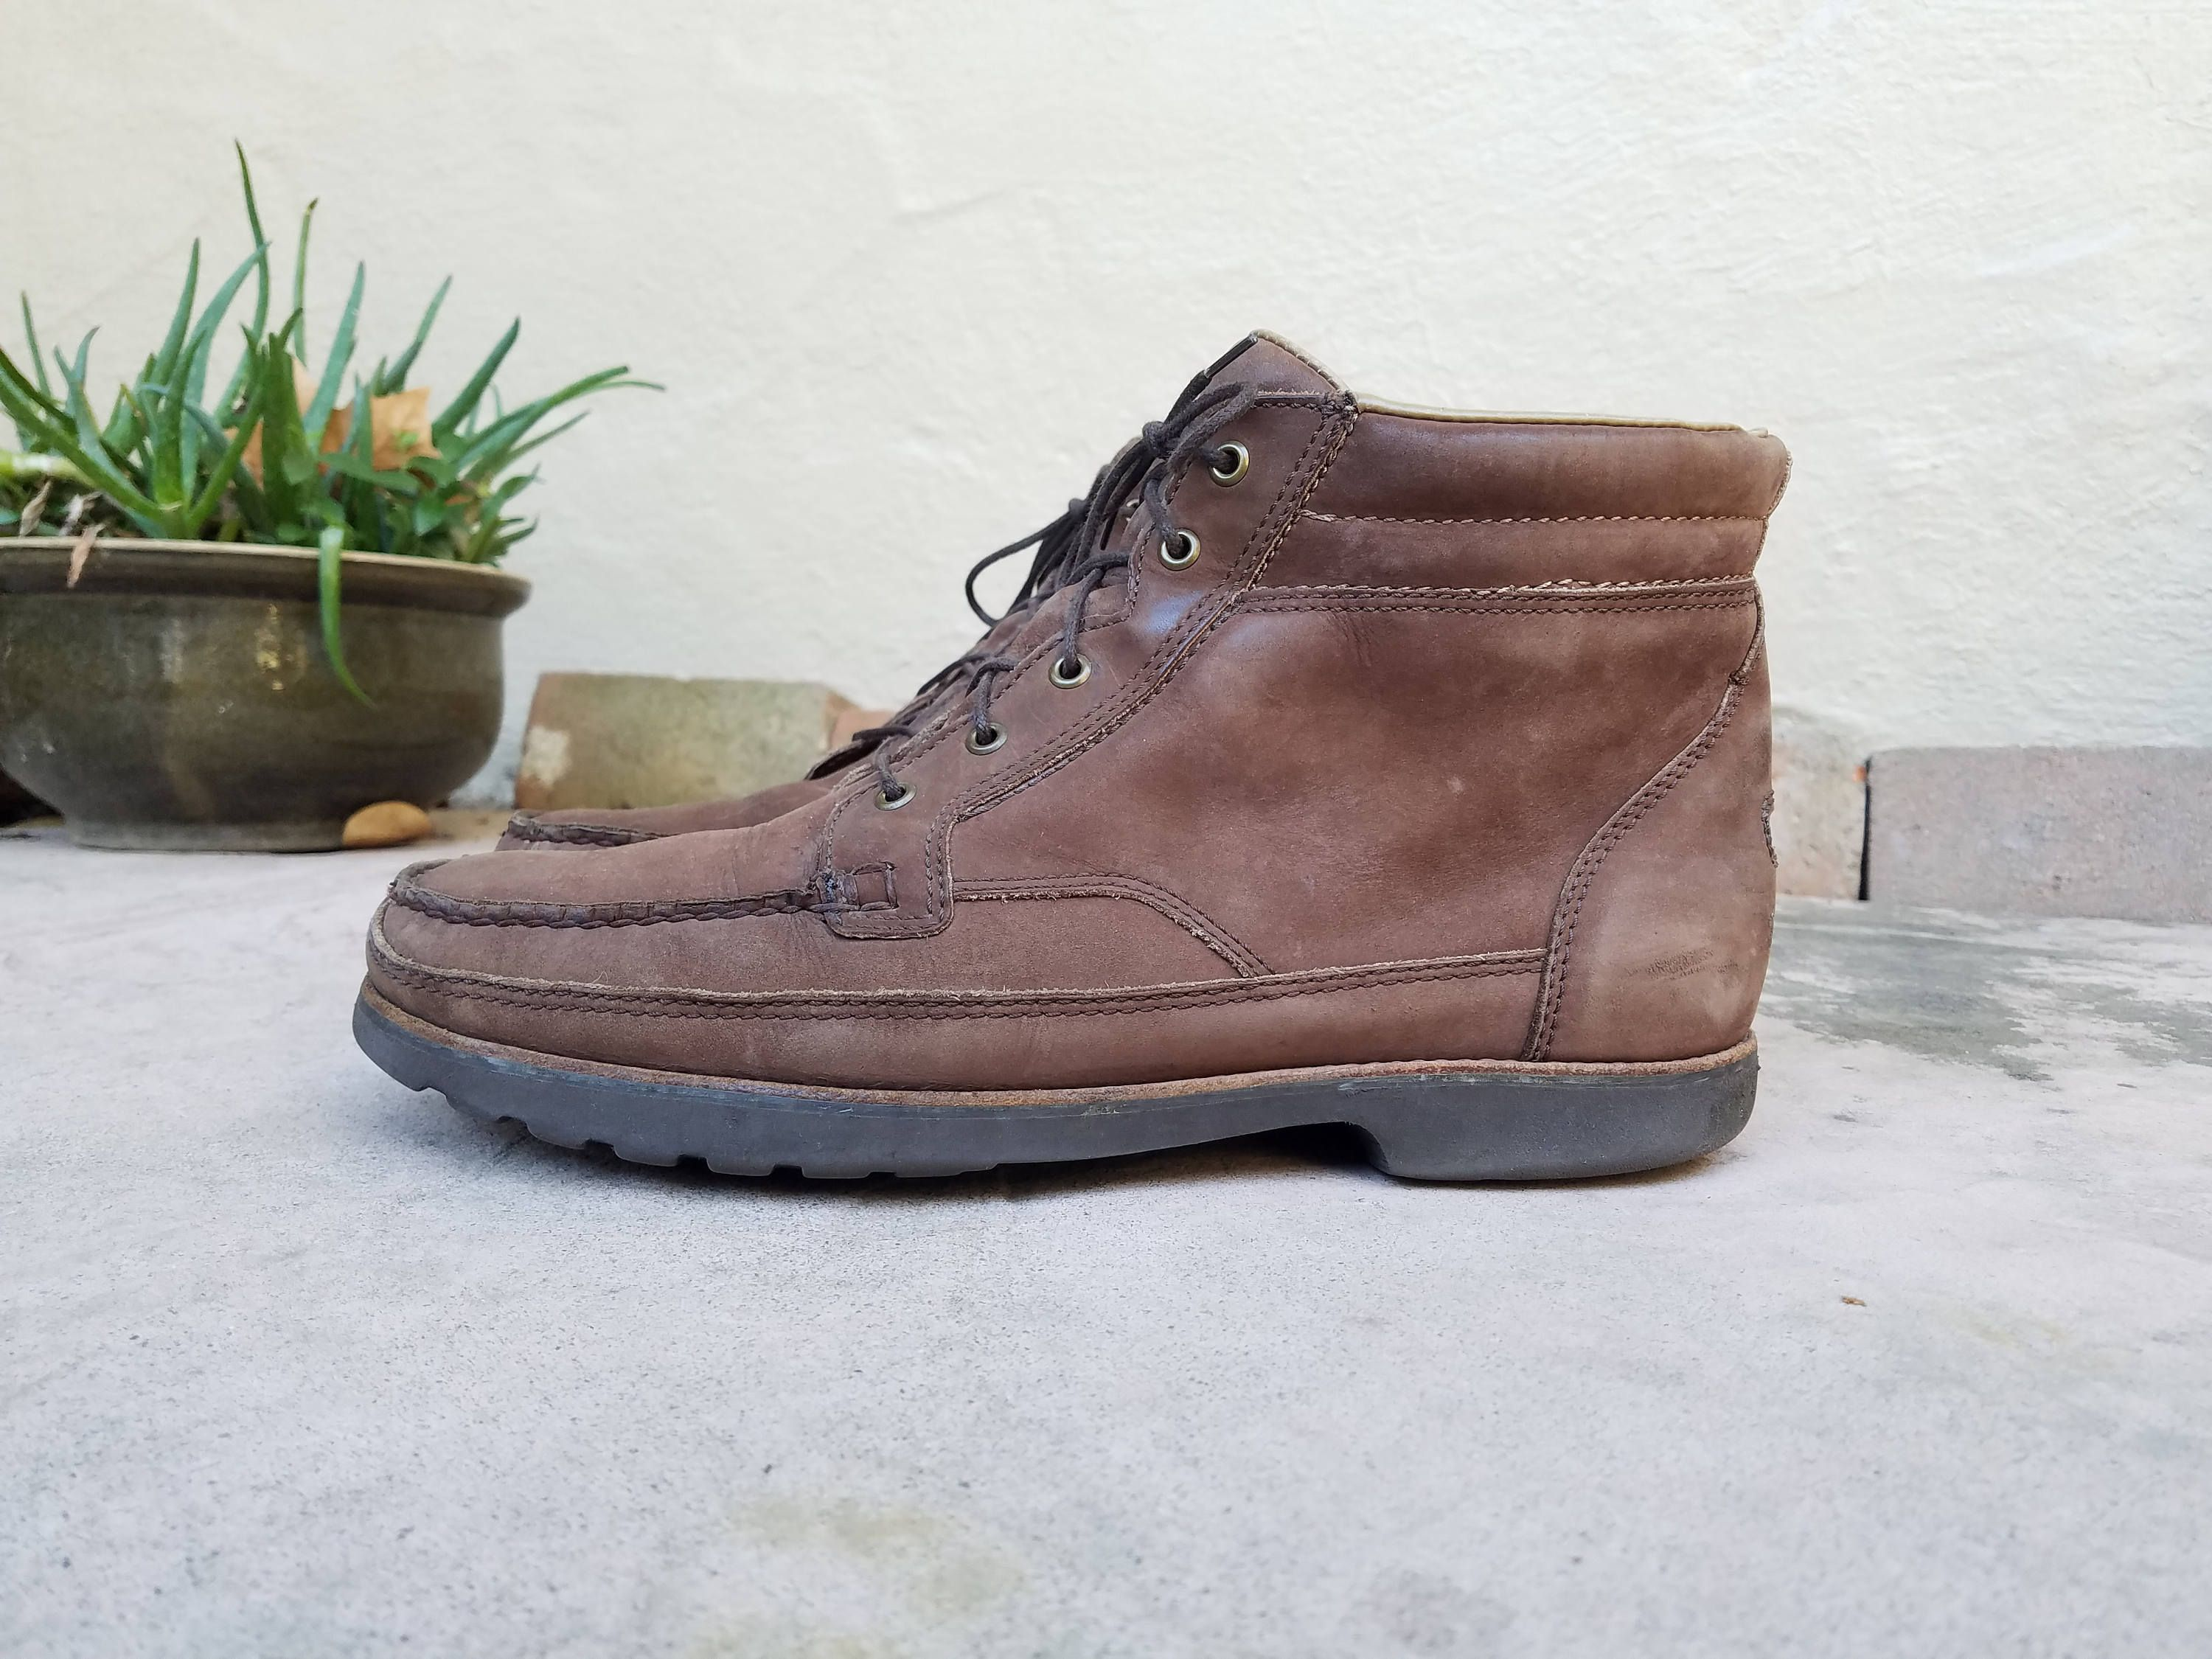 wp comfort keen comfortable beats ive keens img utility comforter review best boots for work milwaukee worn yet ever walking anything s